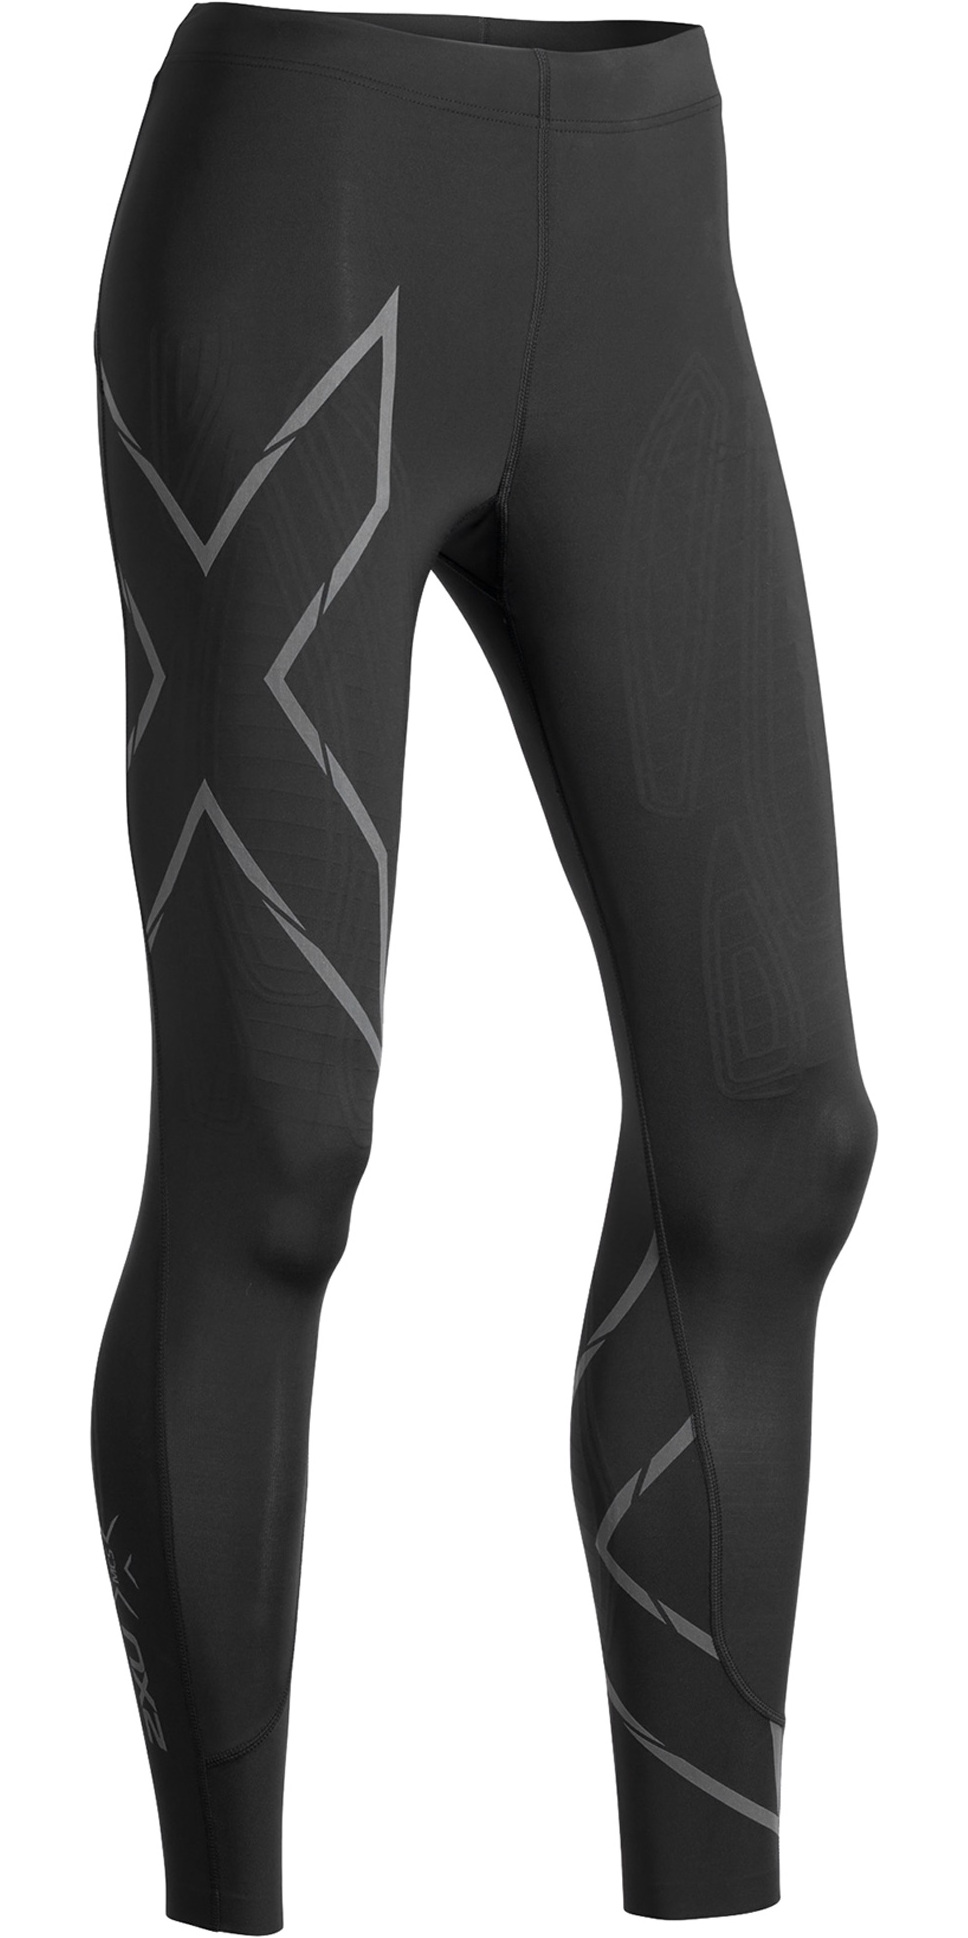 00c9d874097ce 2019 2XU Womens Mcs Run Compression Tights Black Reflective Wa5332b -  Triathlon Clothing - | Wetsuit Outlet